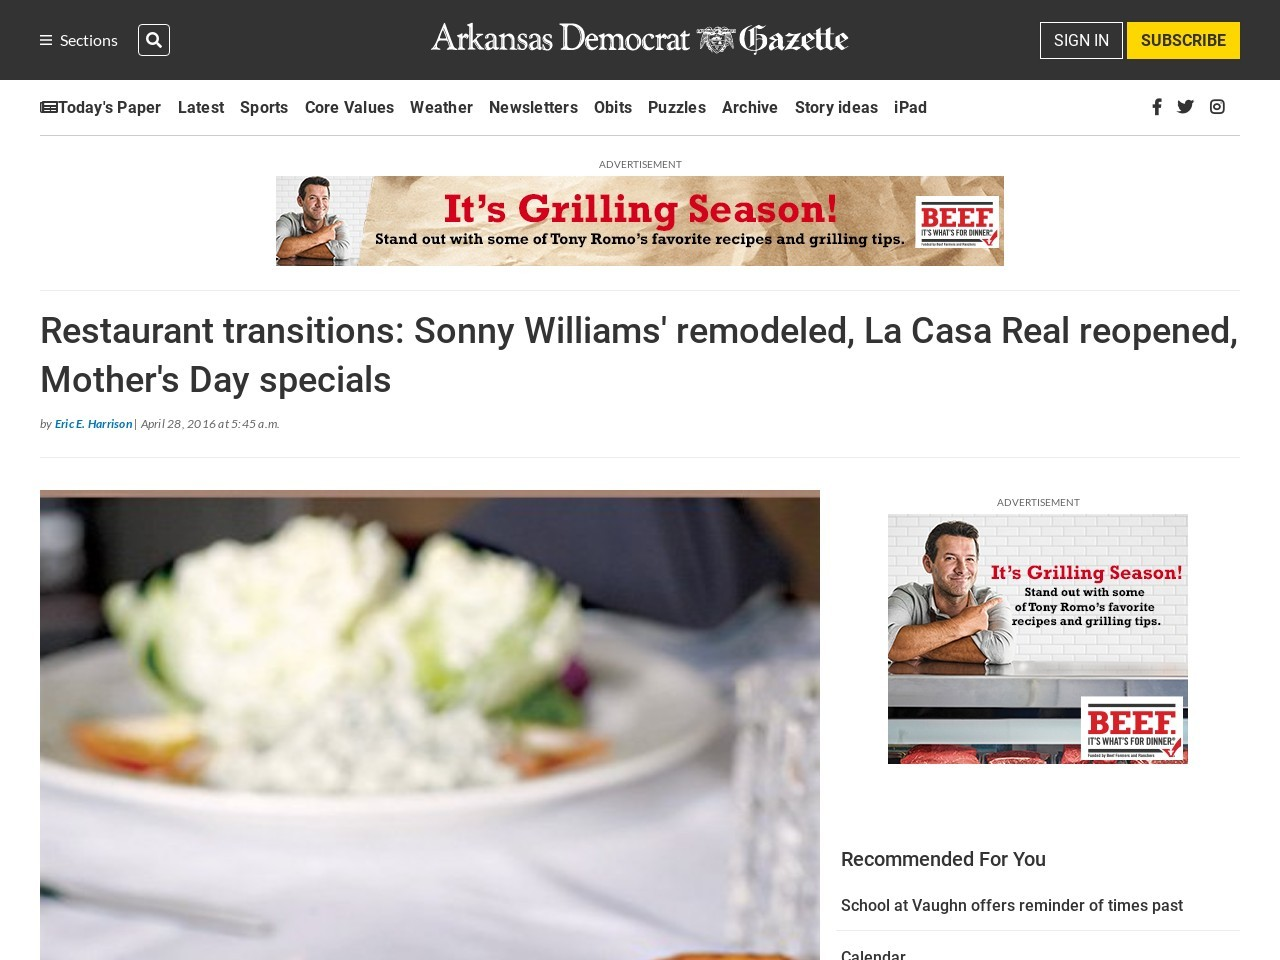 Restaurant transitions: Sonny's remodeled, La Casa Real reopened in NLR